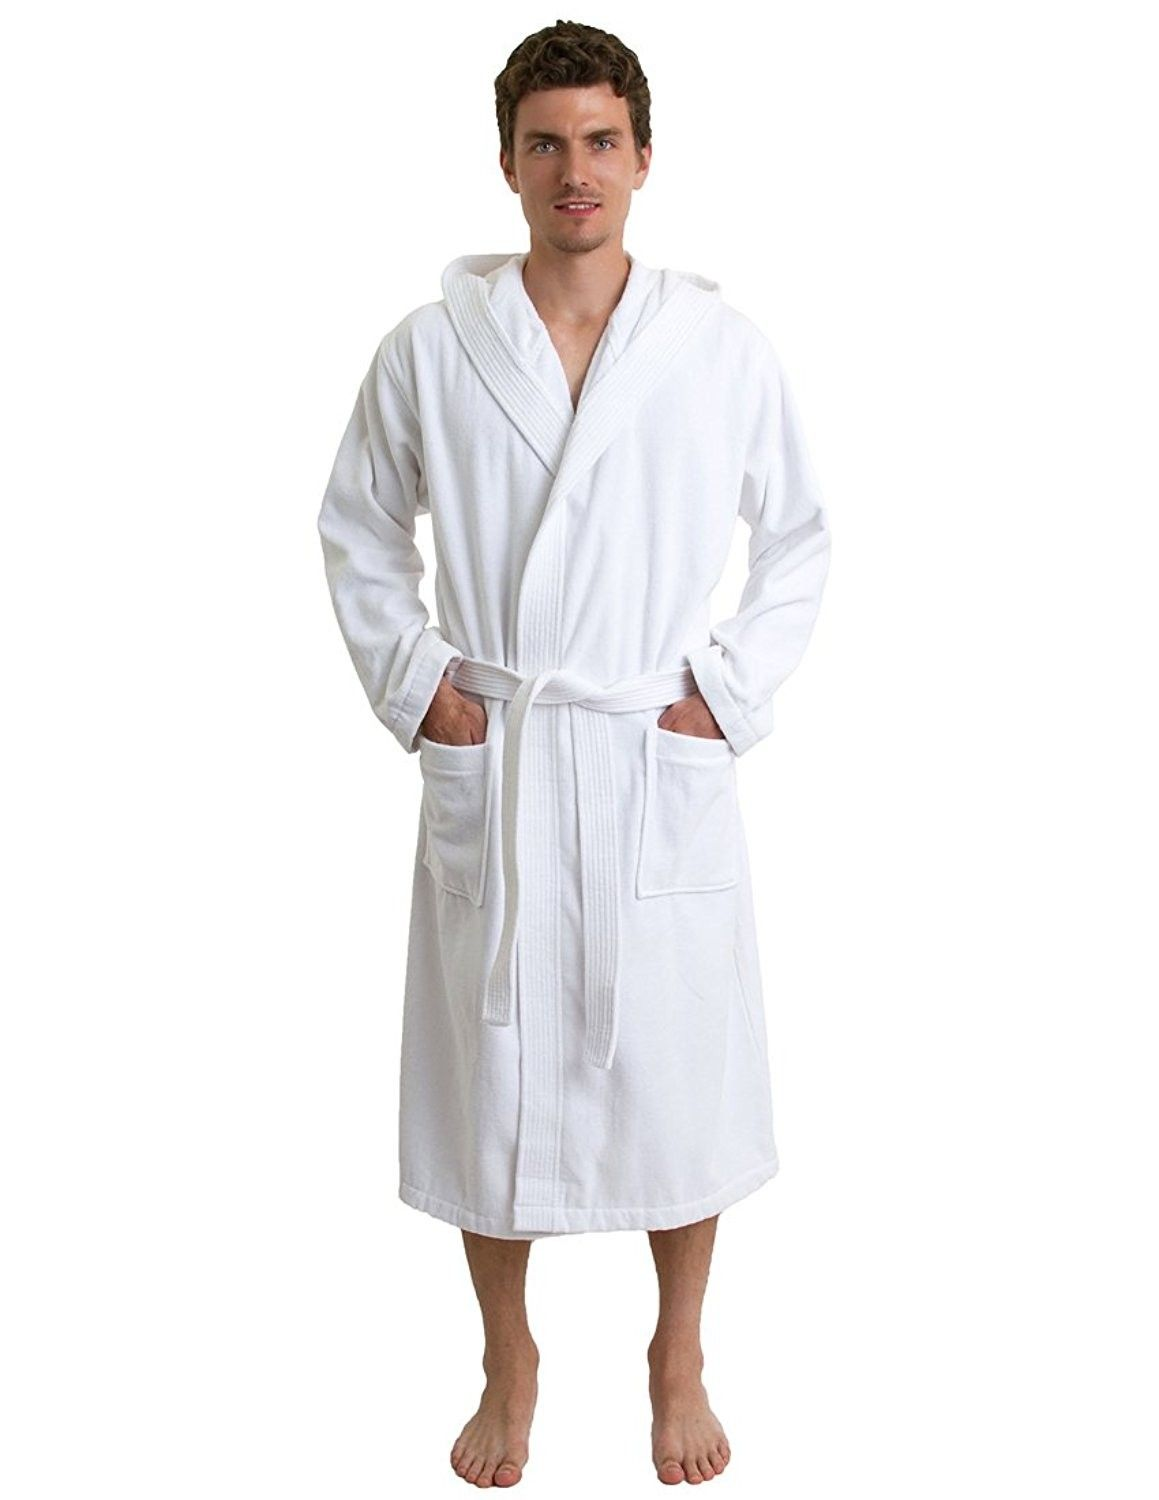 239941922c Men s Robe- Hooded Terry Velour Cotton Bathrobe Made in Turkey - White -  CT11KJIDP6B